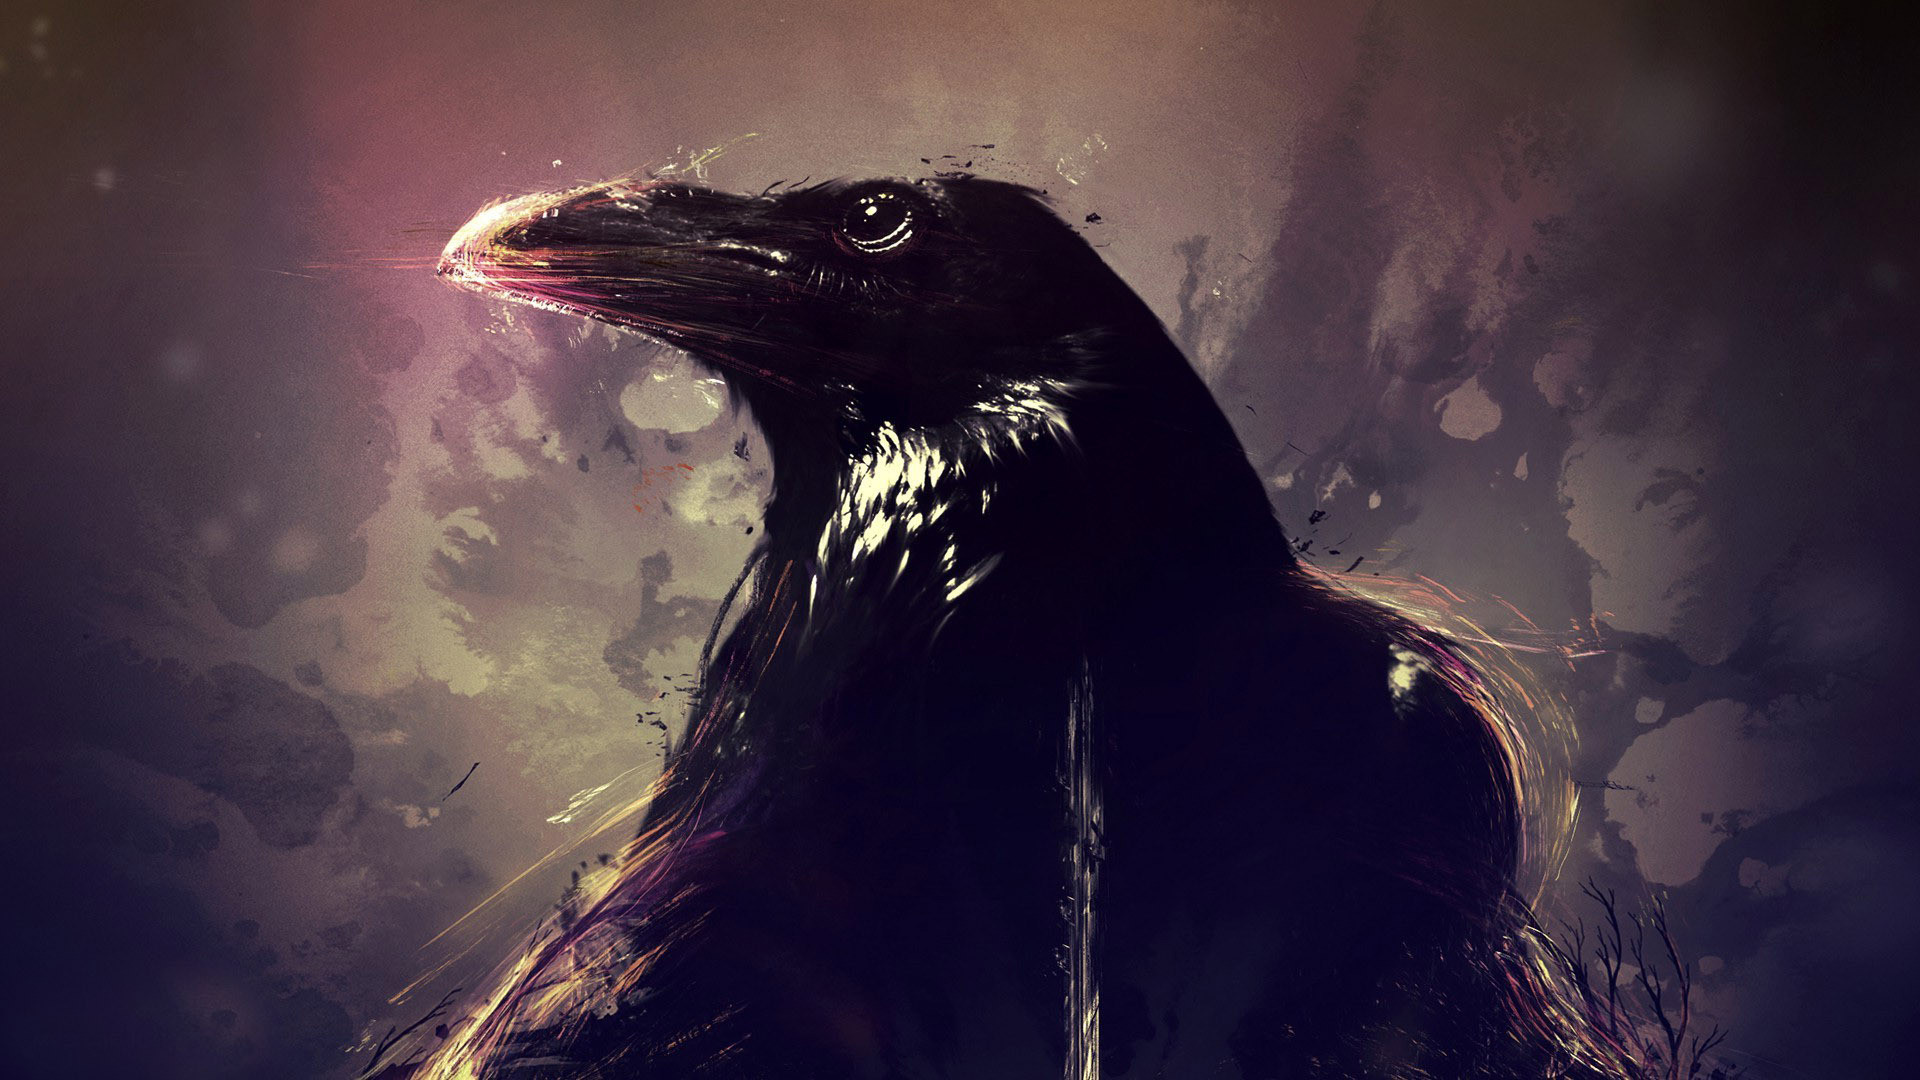 Crow Wallpapers Data Src Crow Desktop Background 1920x1080 Download Hd Wallpaper Wallpapertip